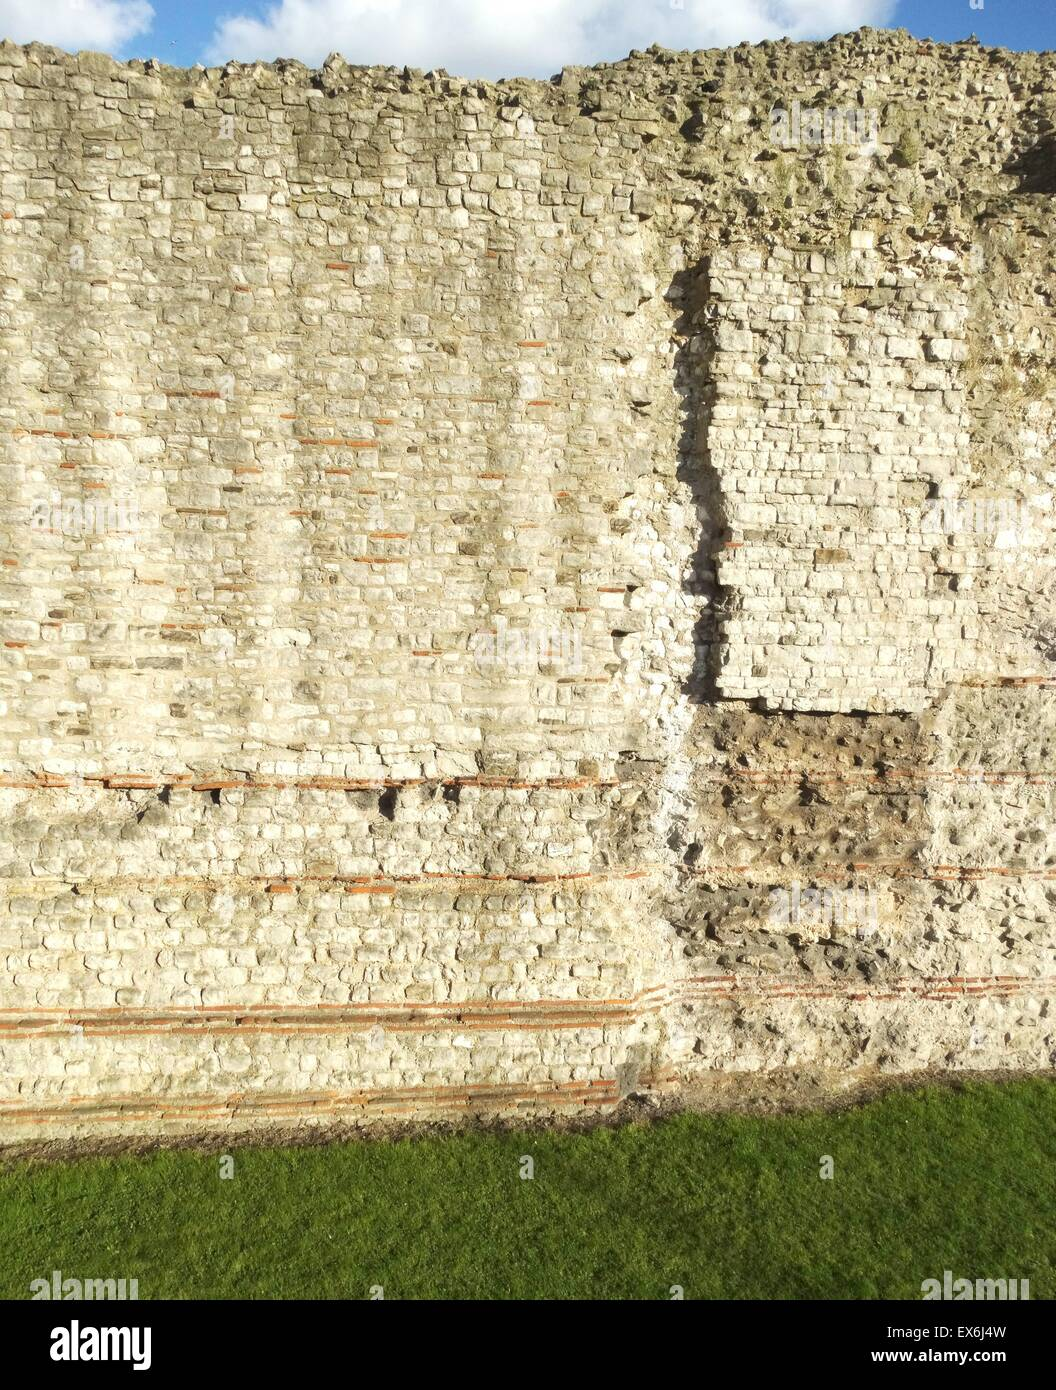 Colour photograph of London Wall, a defensive wall constructed by the Romans around Londinium. Dated 2nd Century - Stock Image